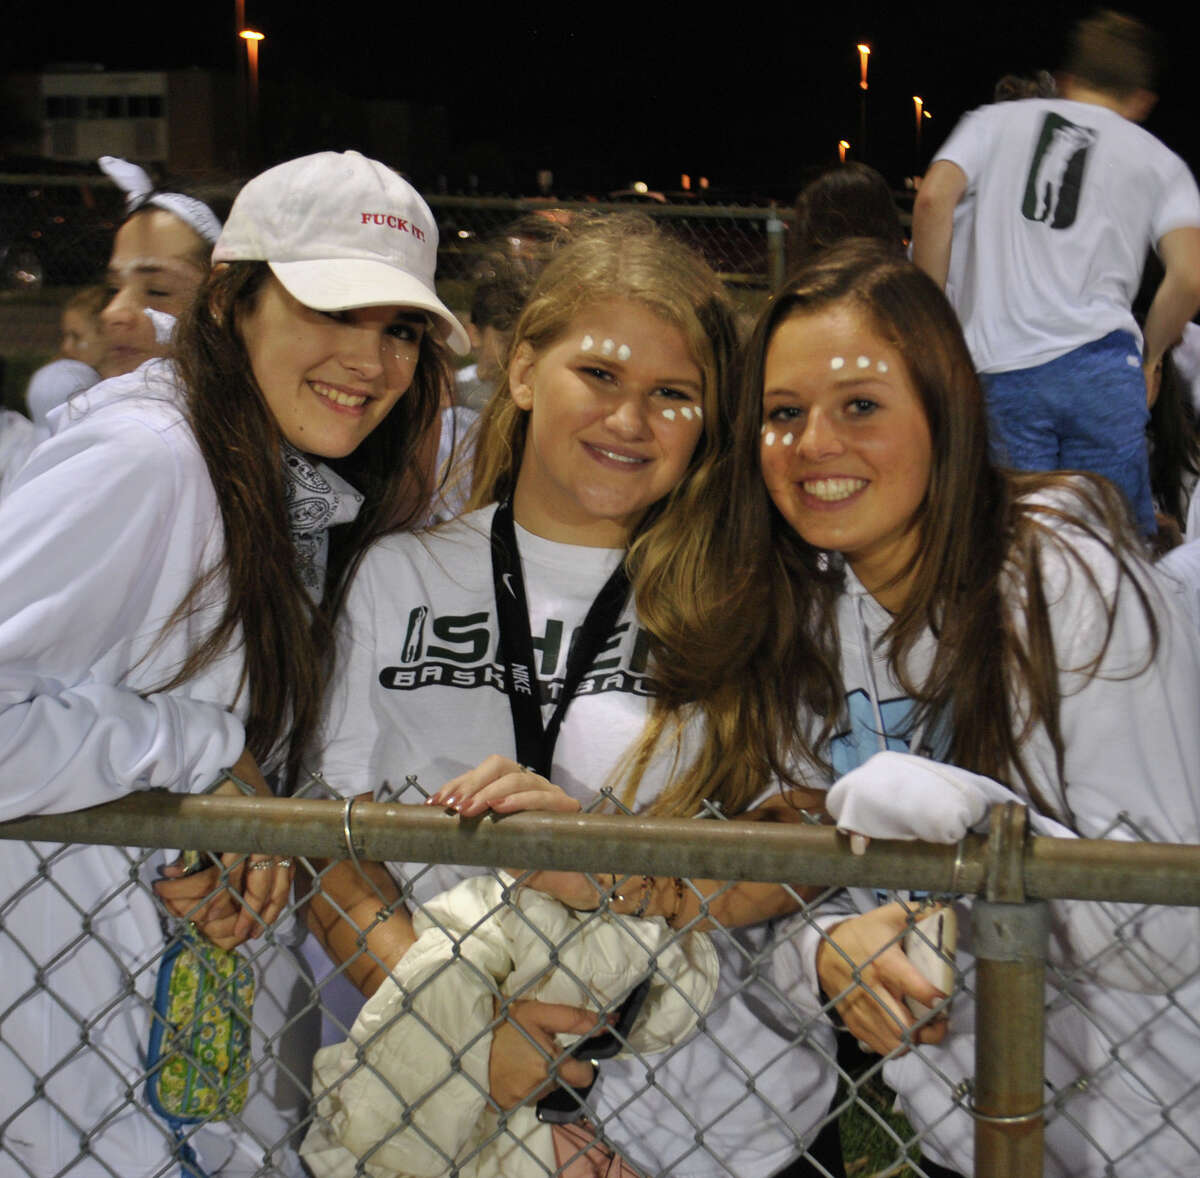 Were you Seen at the Shaker vs. Shenendehowa high school football game Sept. 21, 2018, at Shaker High School in Latham, NY?